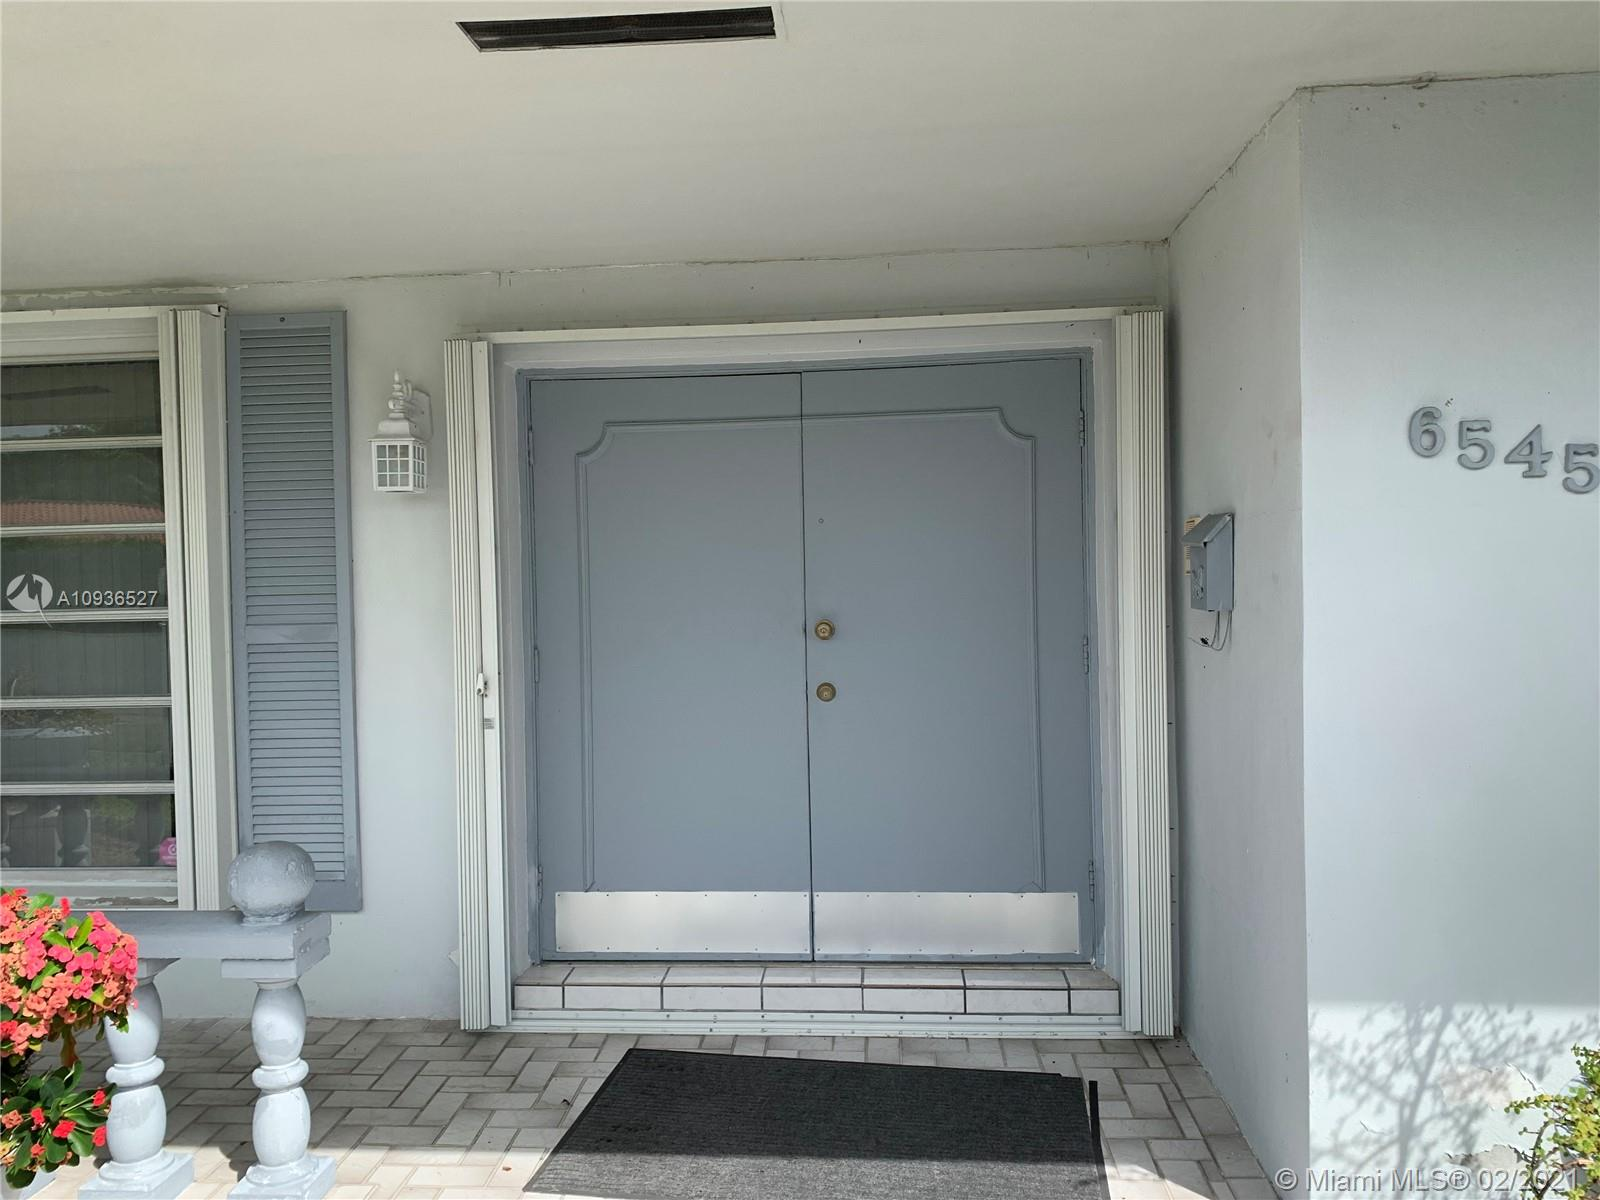 Details for 6545 90th Ct, Miami, FL 33173